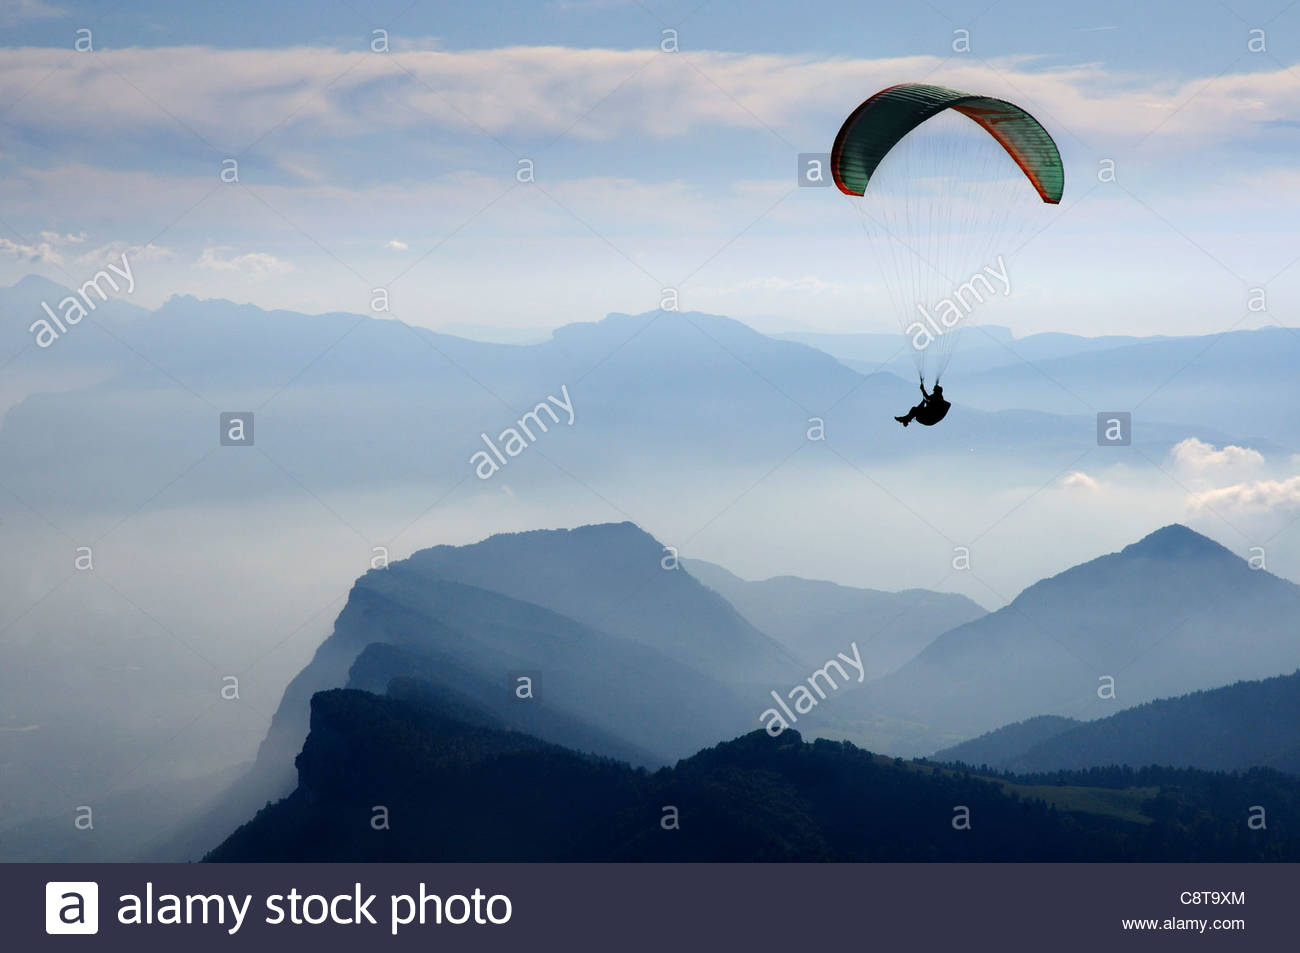 parapenting-in-the-chartreuse-region-of-the-french-alps-C8T9XM.jpg